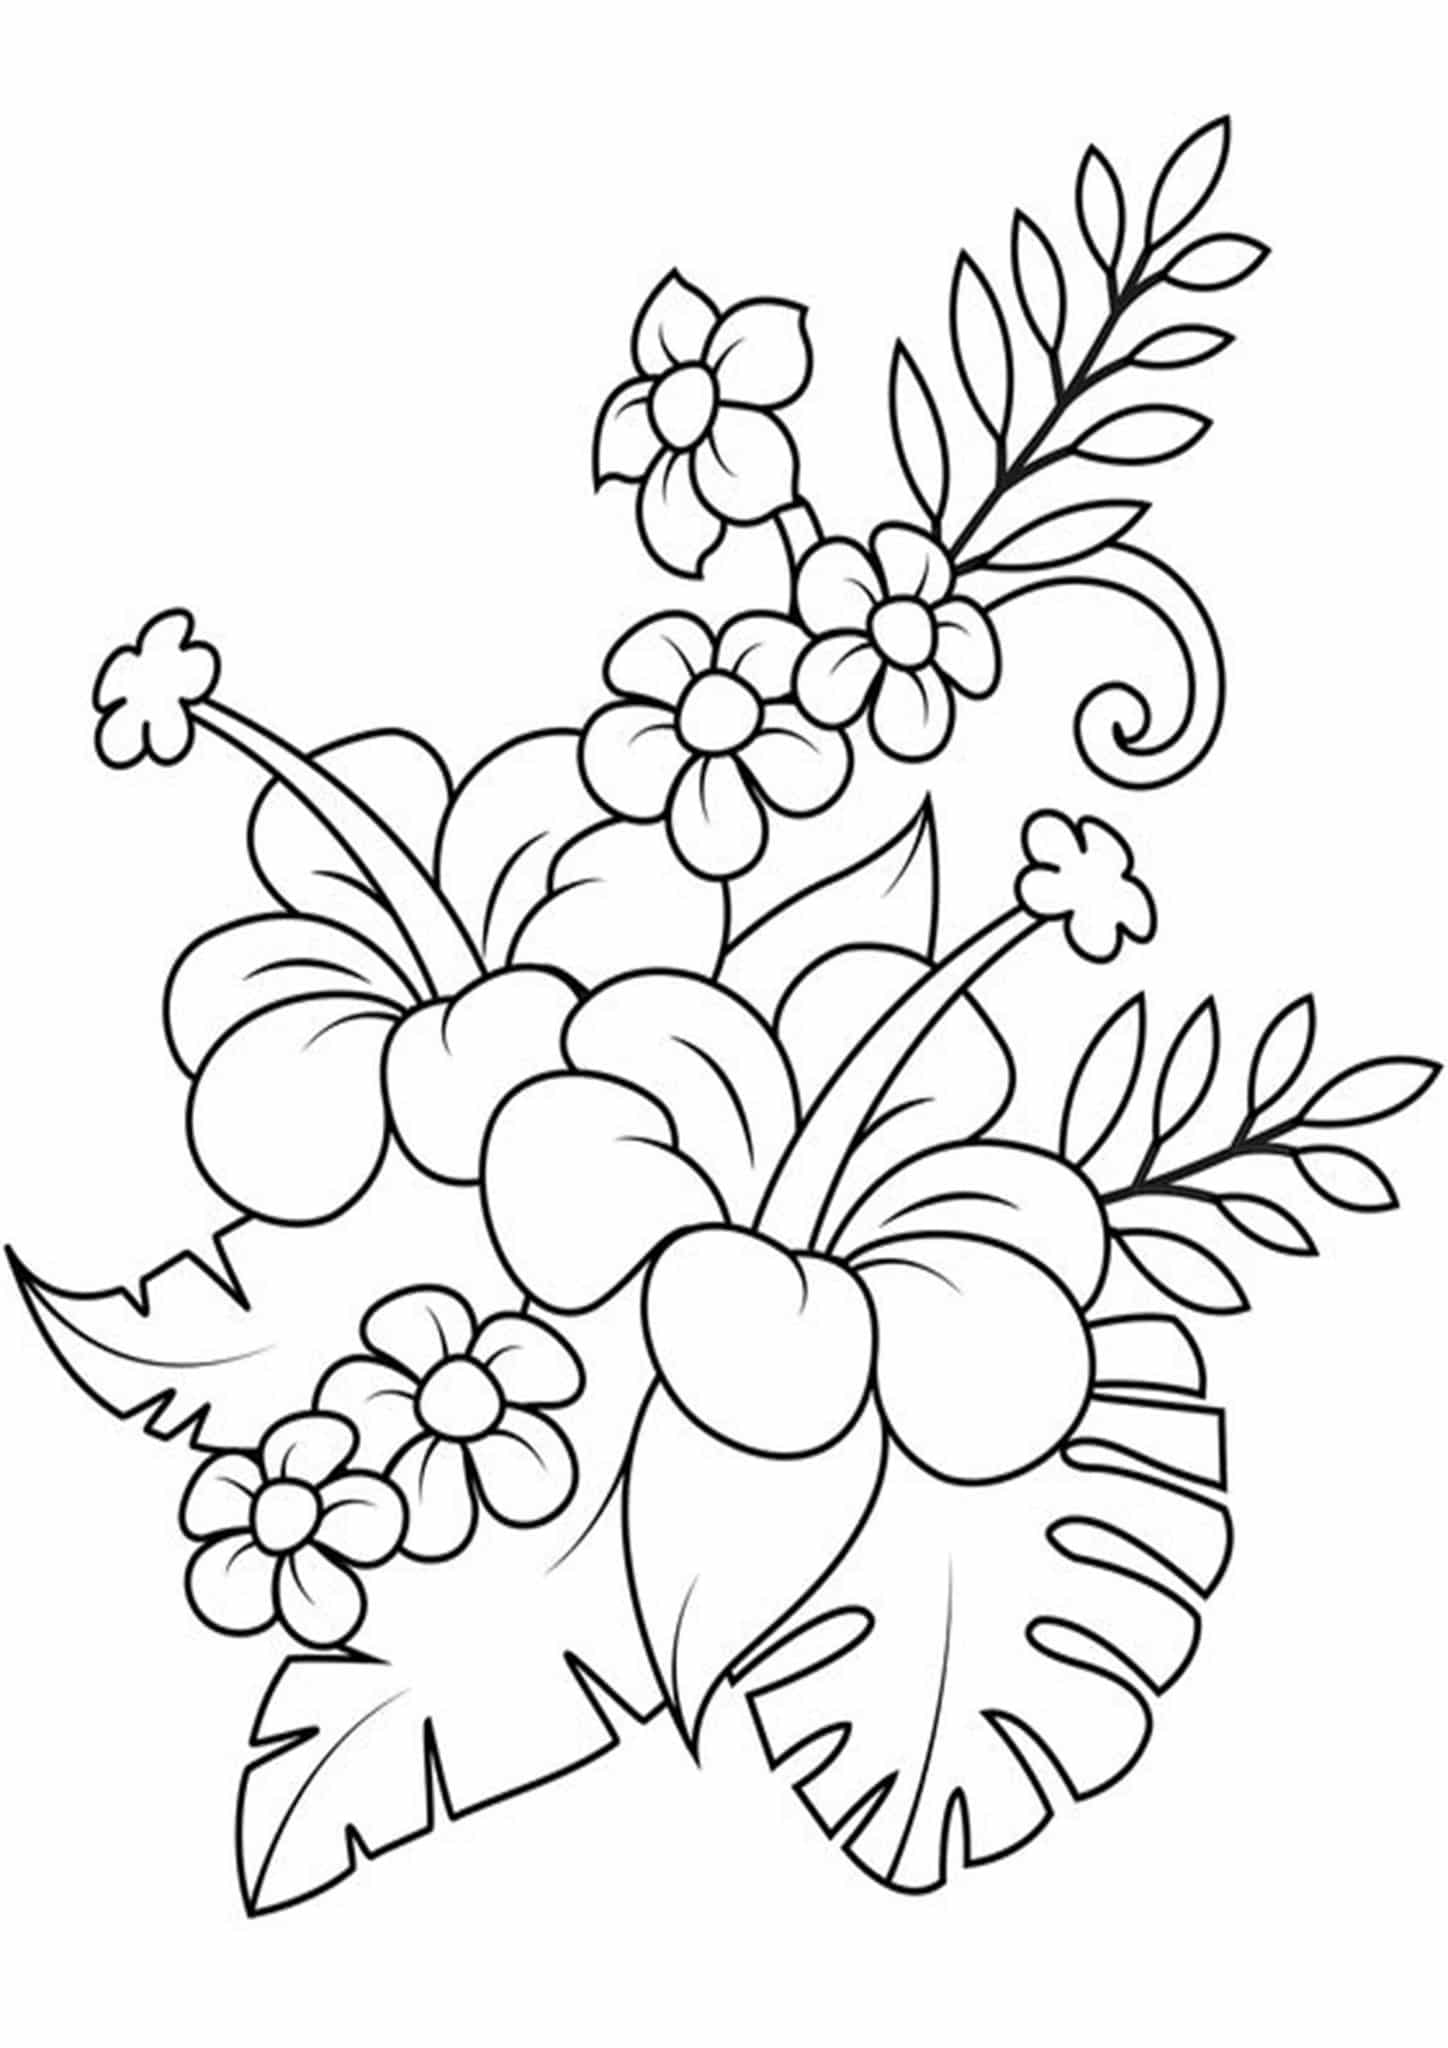 free printable flowers to color bouquet of flowers coloring pages for childrens printable printable color to free flowers